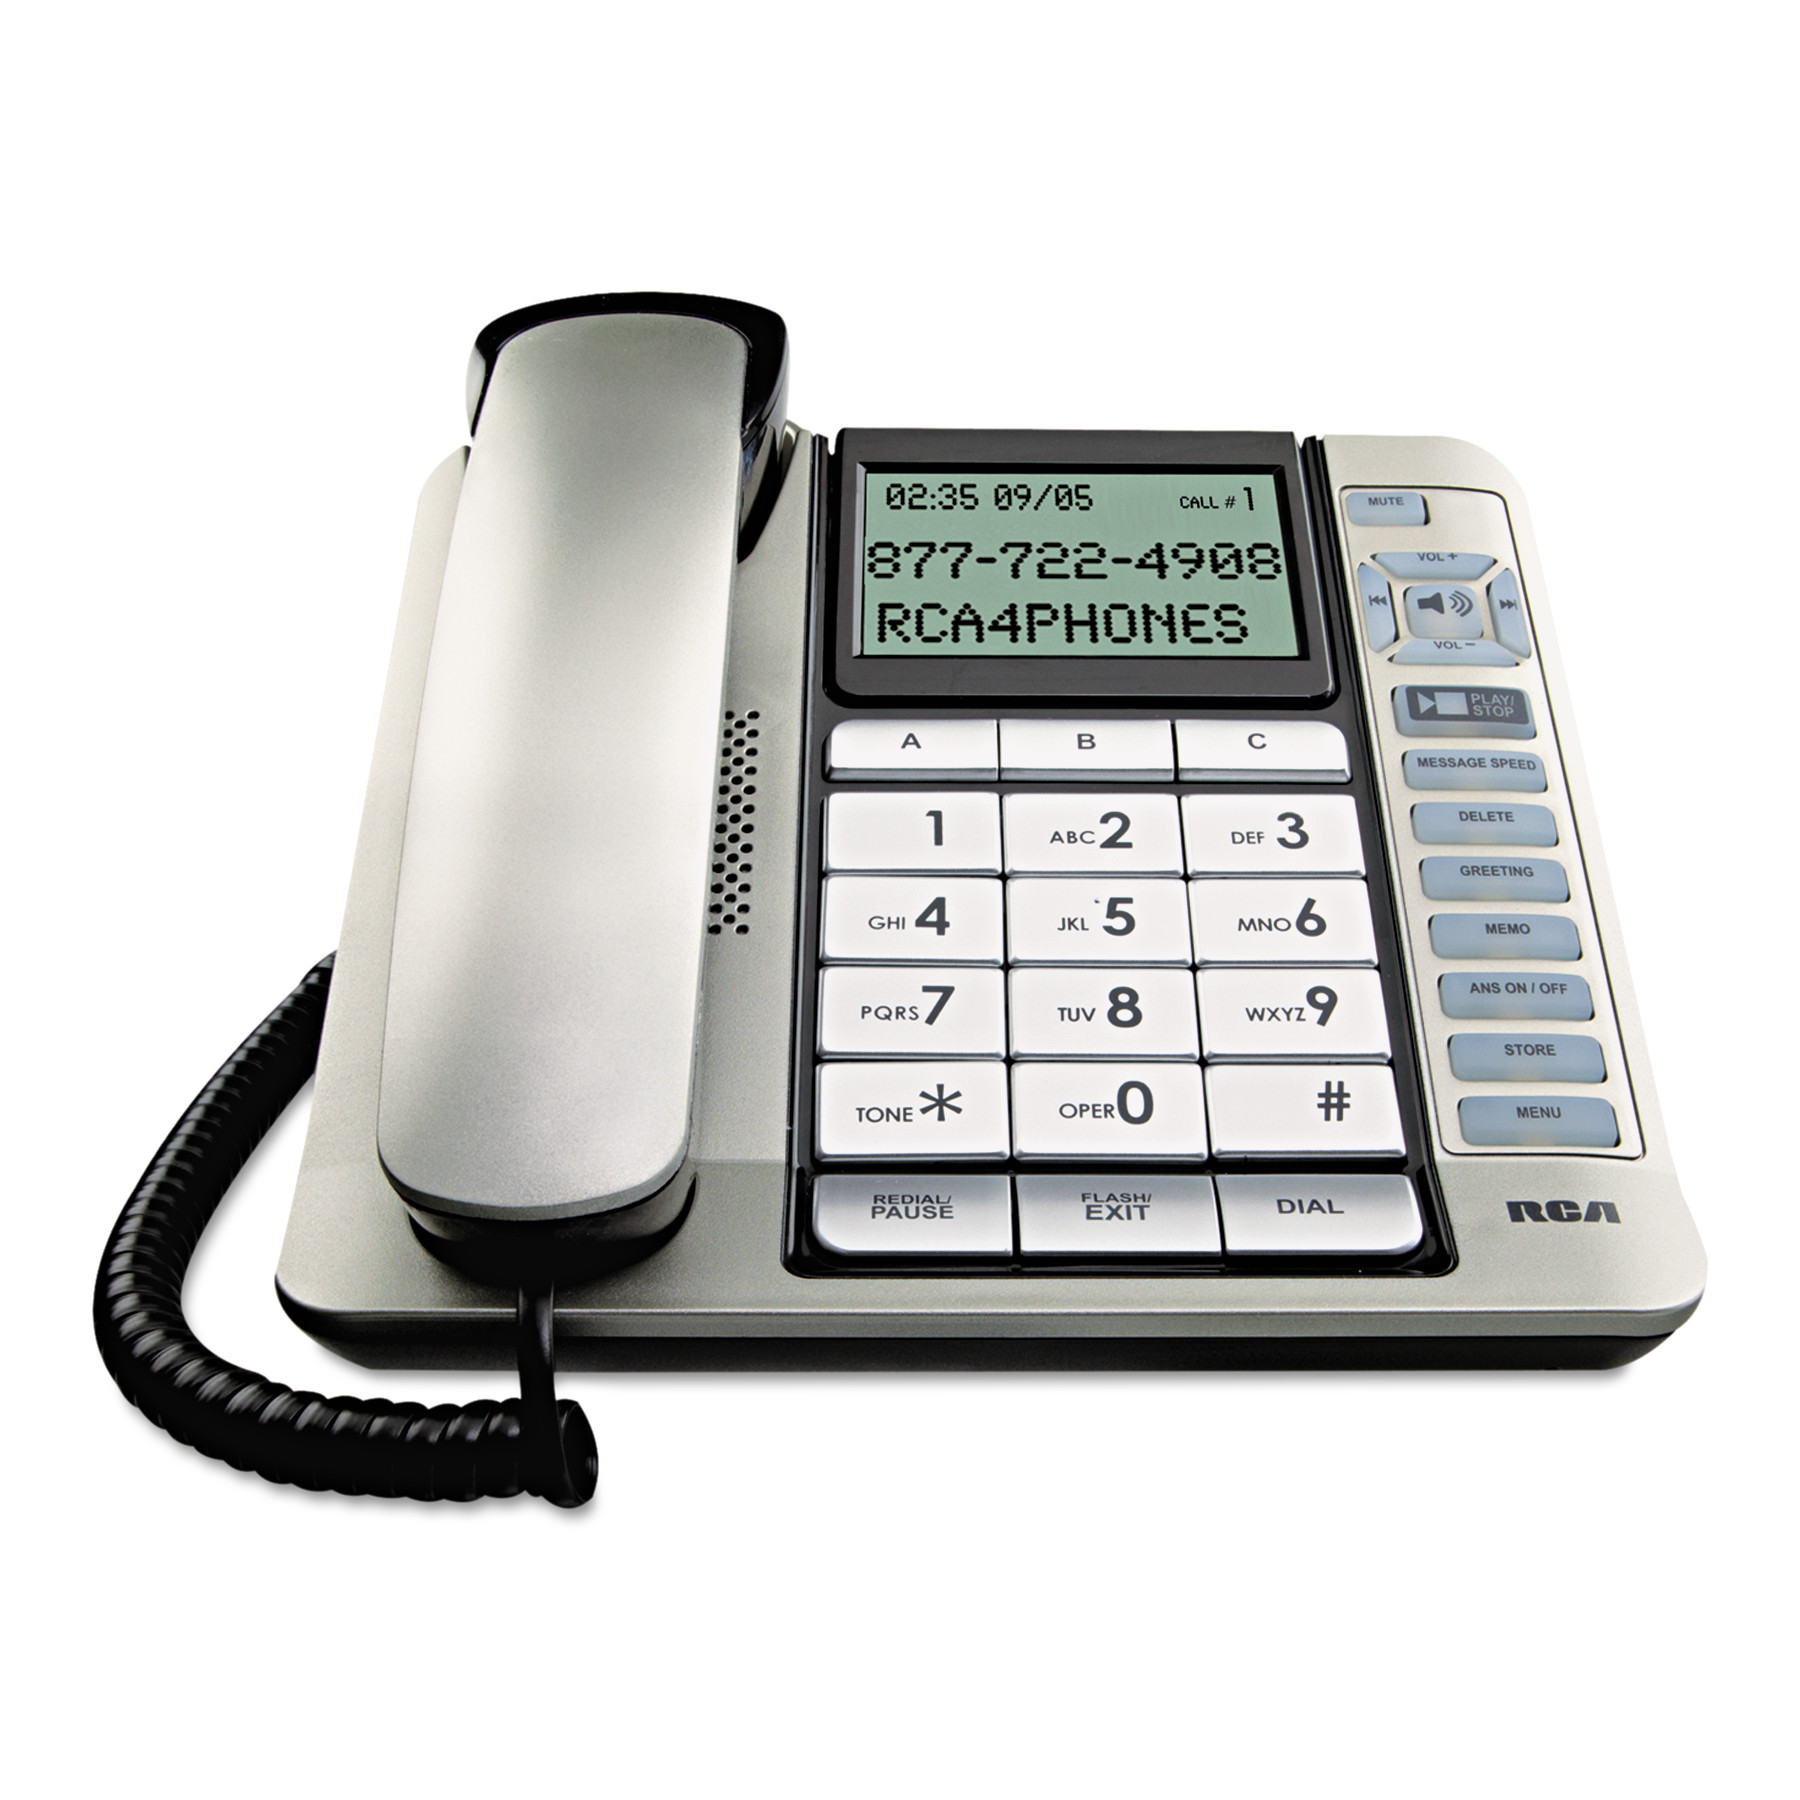 Rca 1114-1bsga Corded Desktop Phone With Caller Id & Digital Answering System